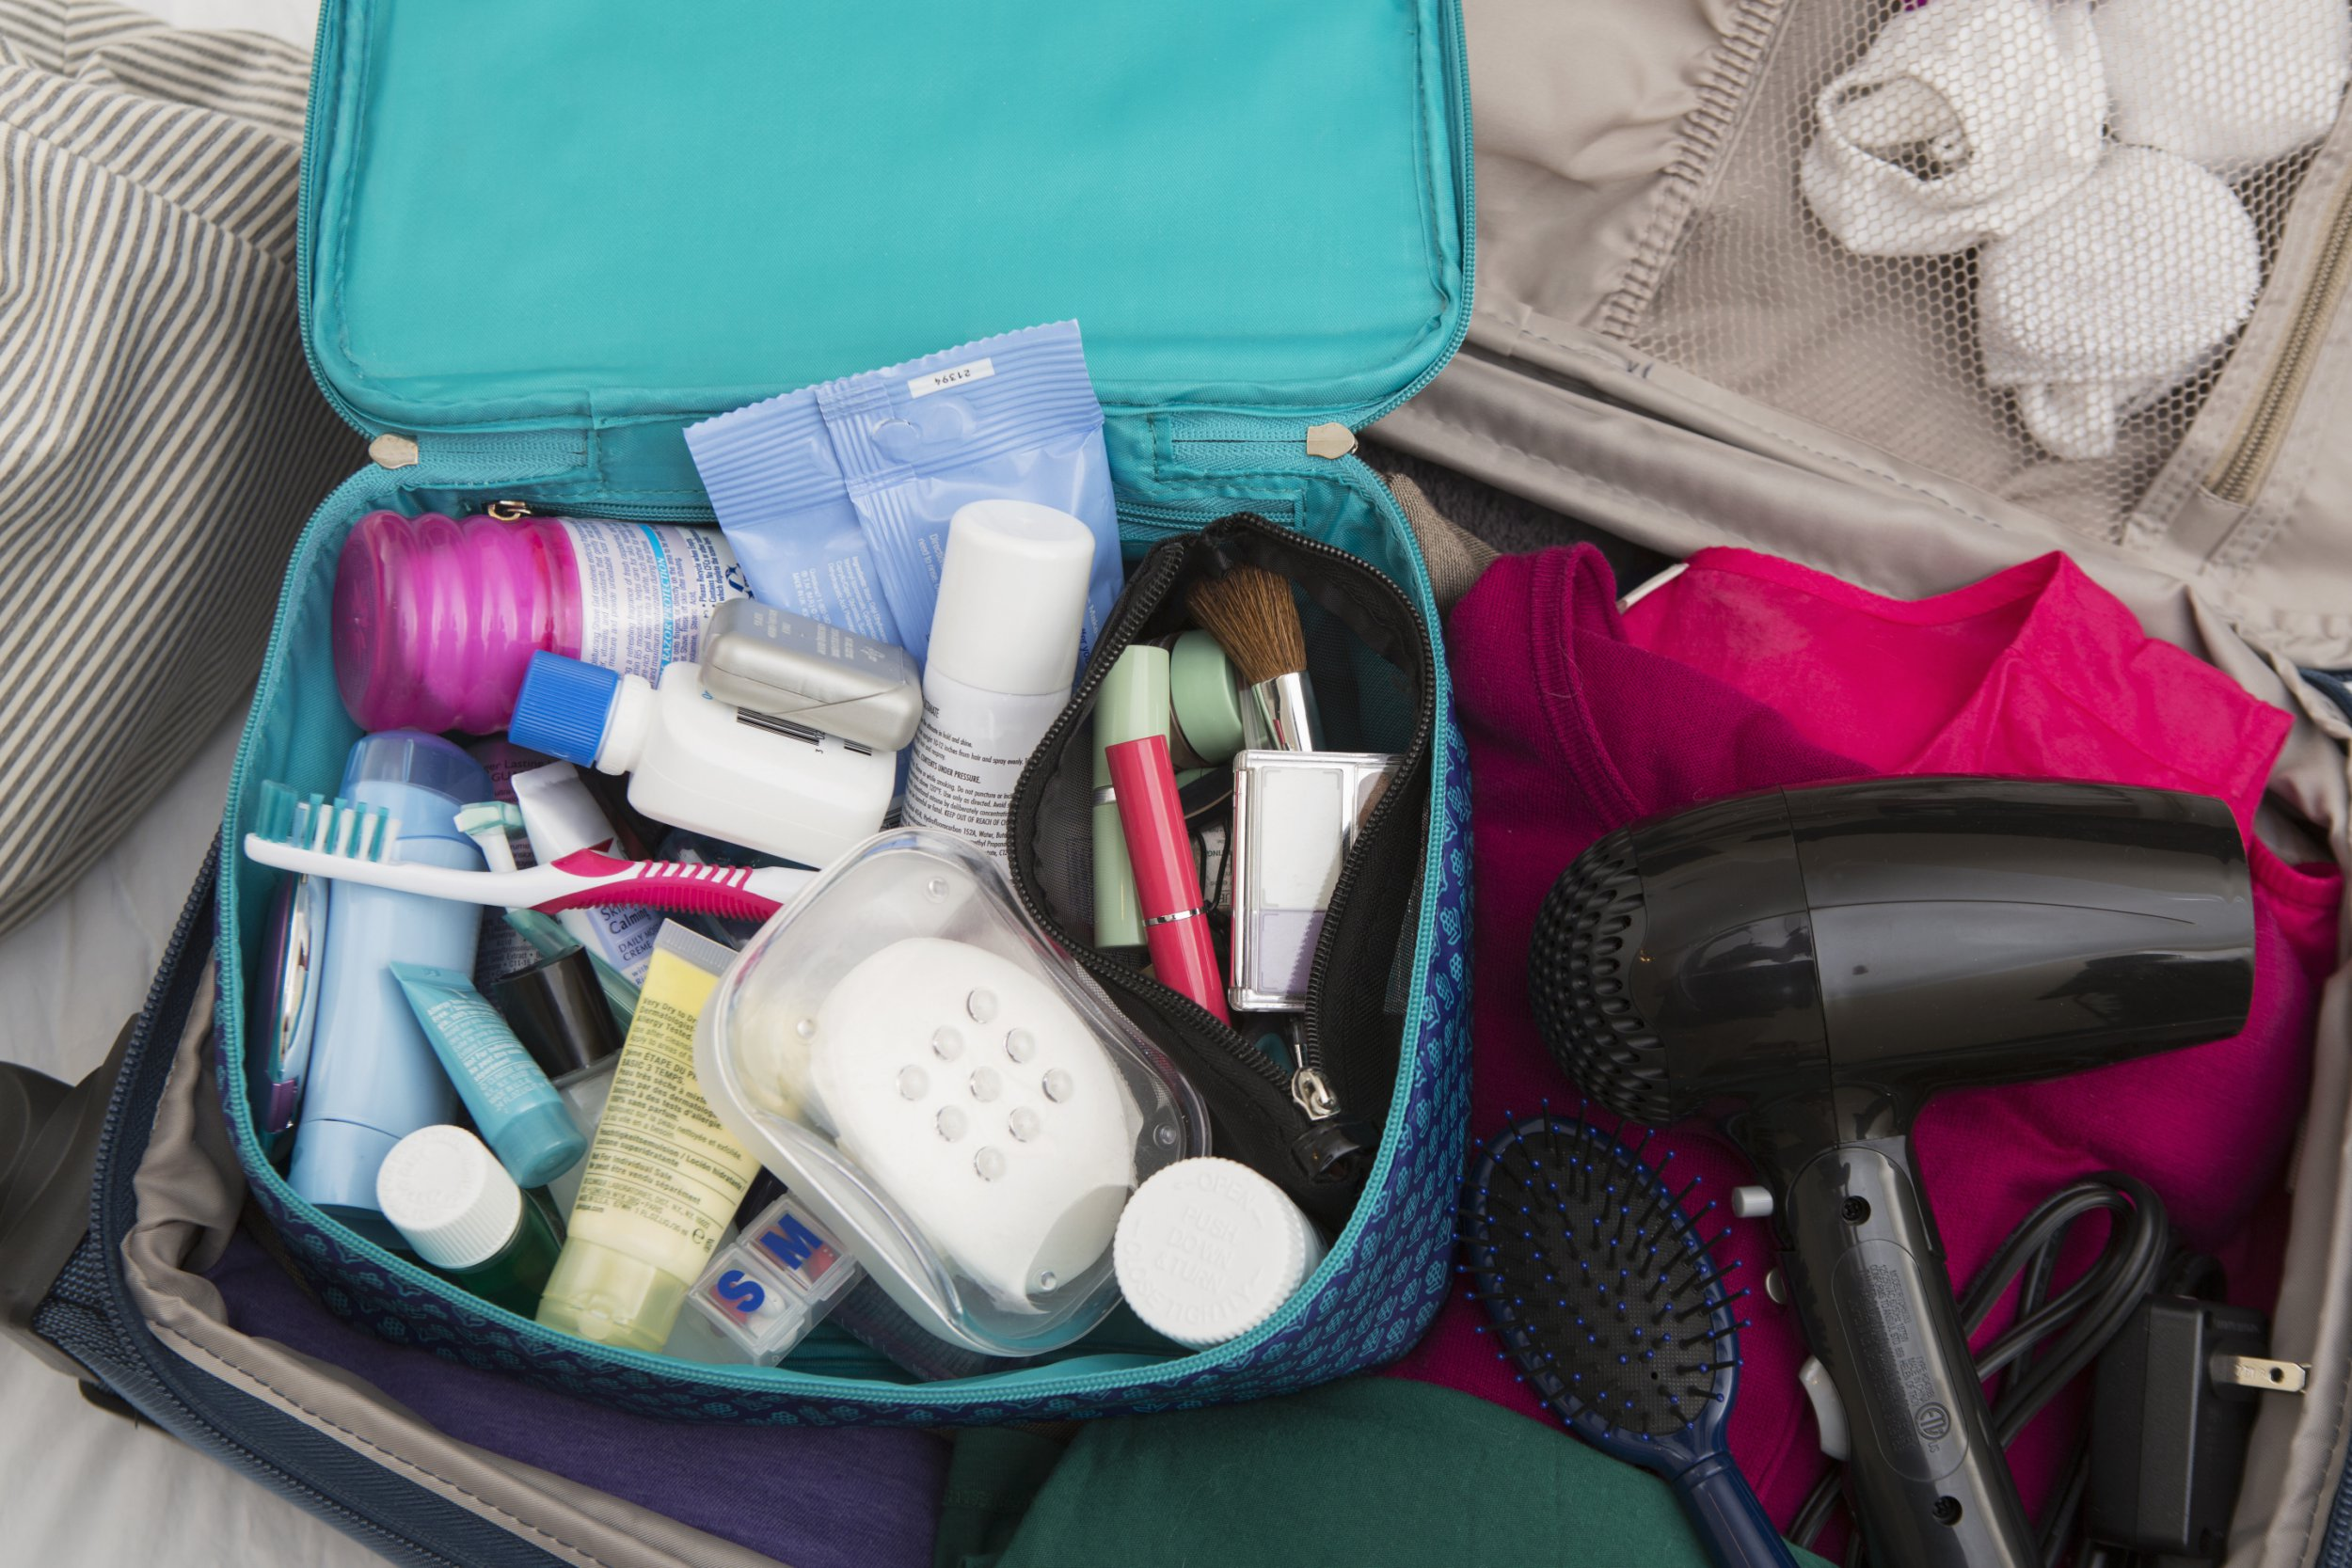 Make-up and baby powder set to be banned from aeroplane hand luggage